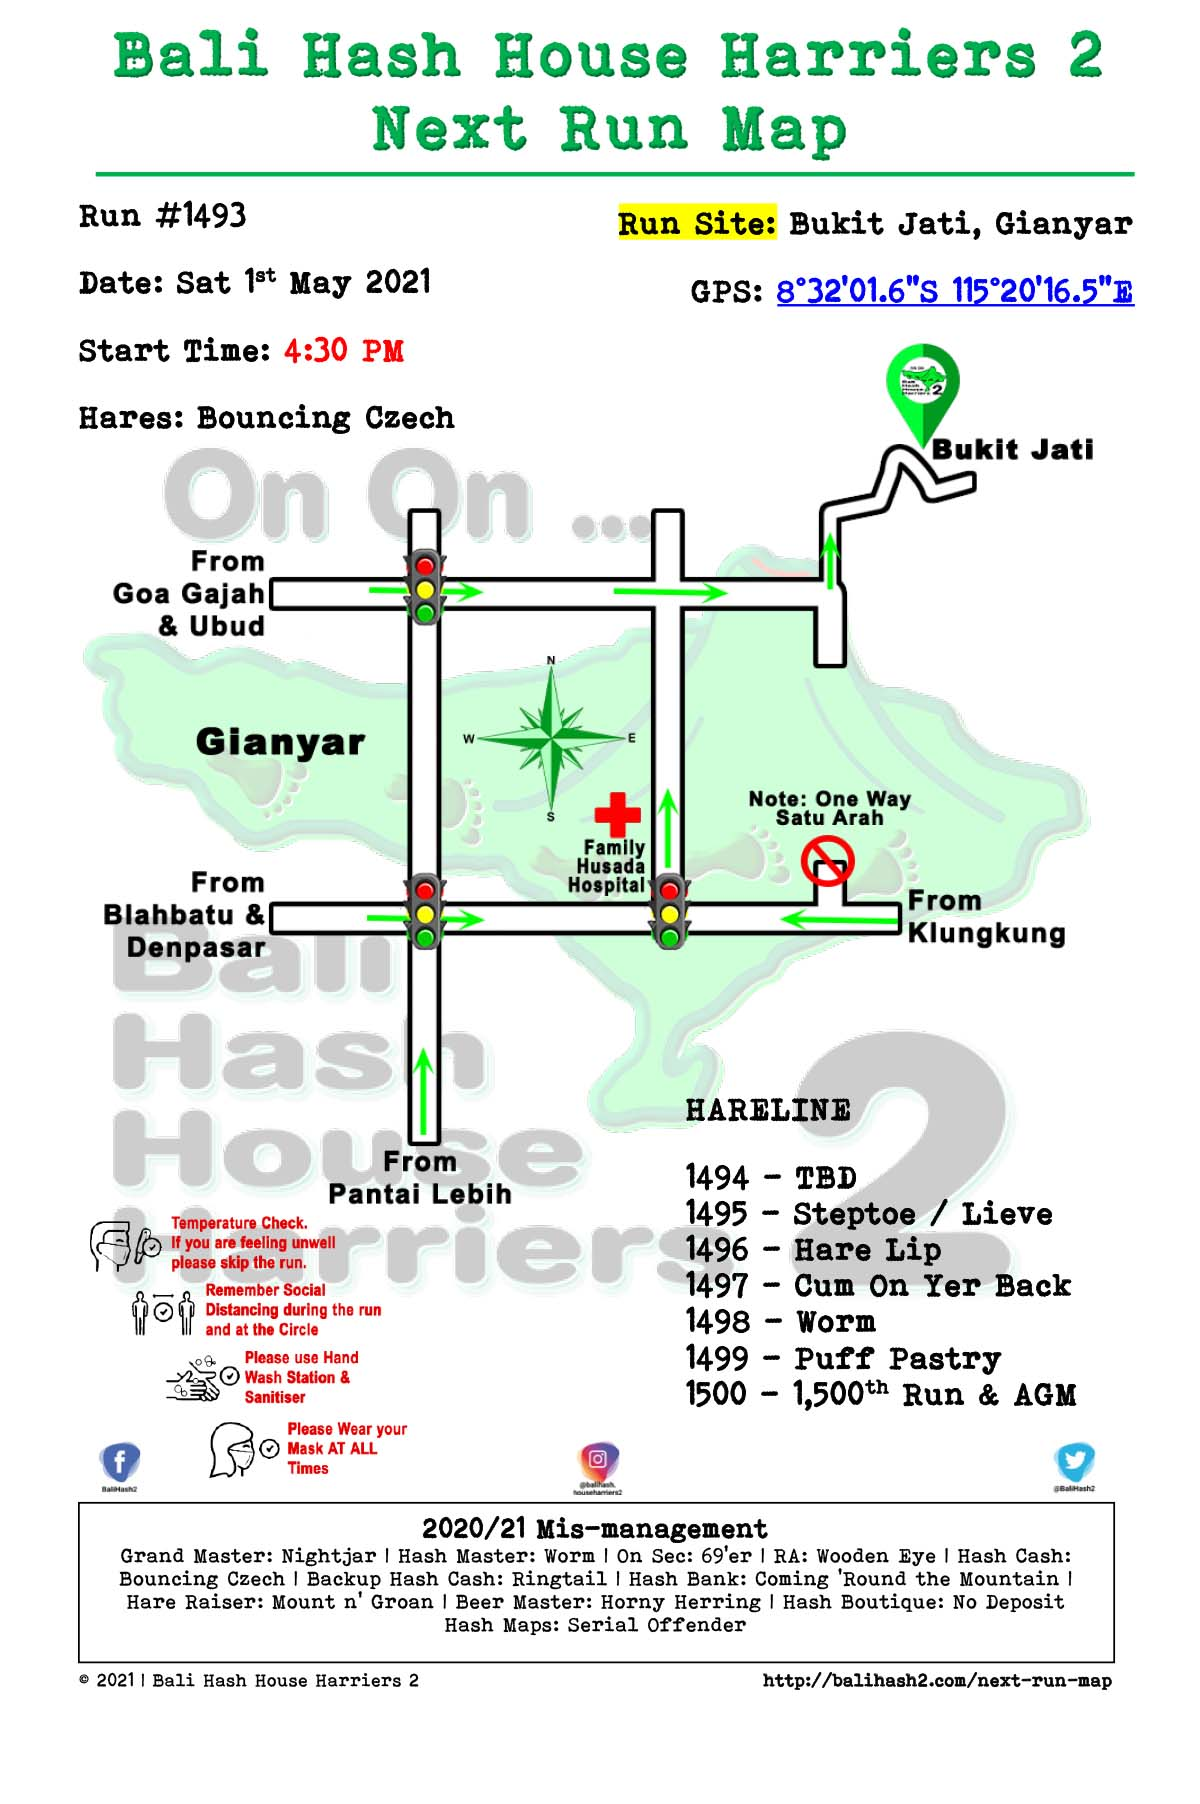 Bali Hash 2 Next Run Map #1493 Bukit Jati Gianyar 1-May-21